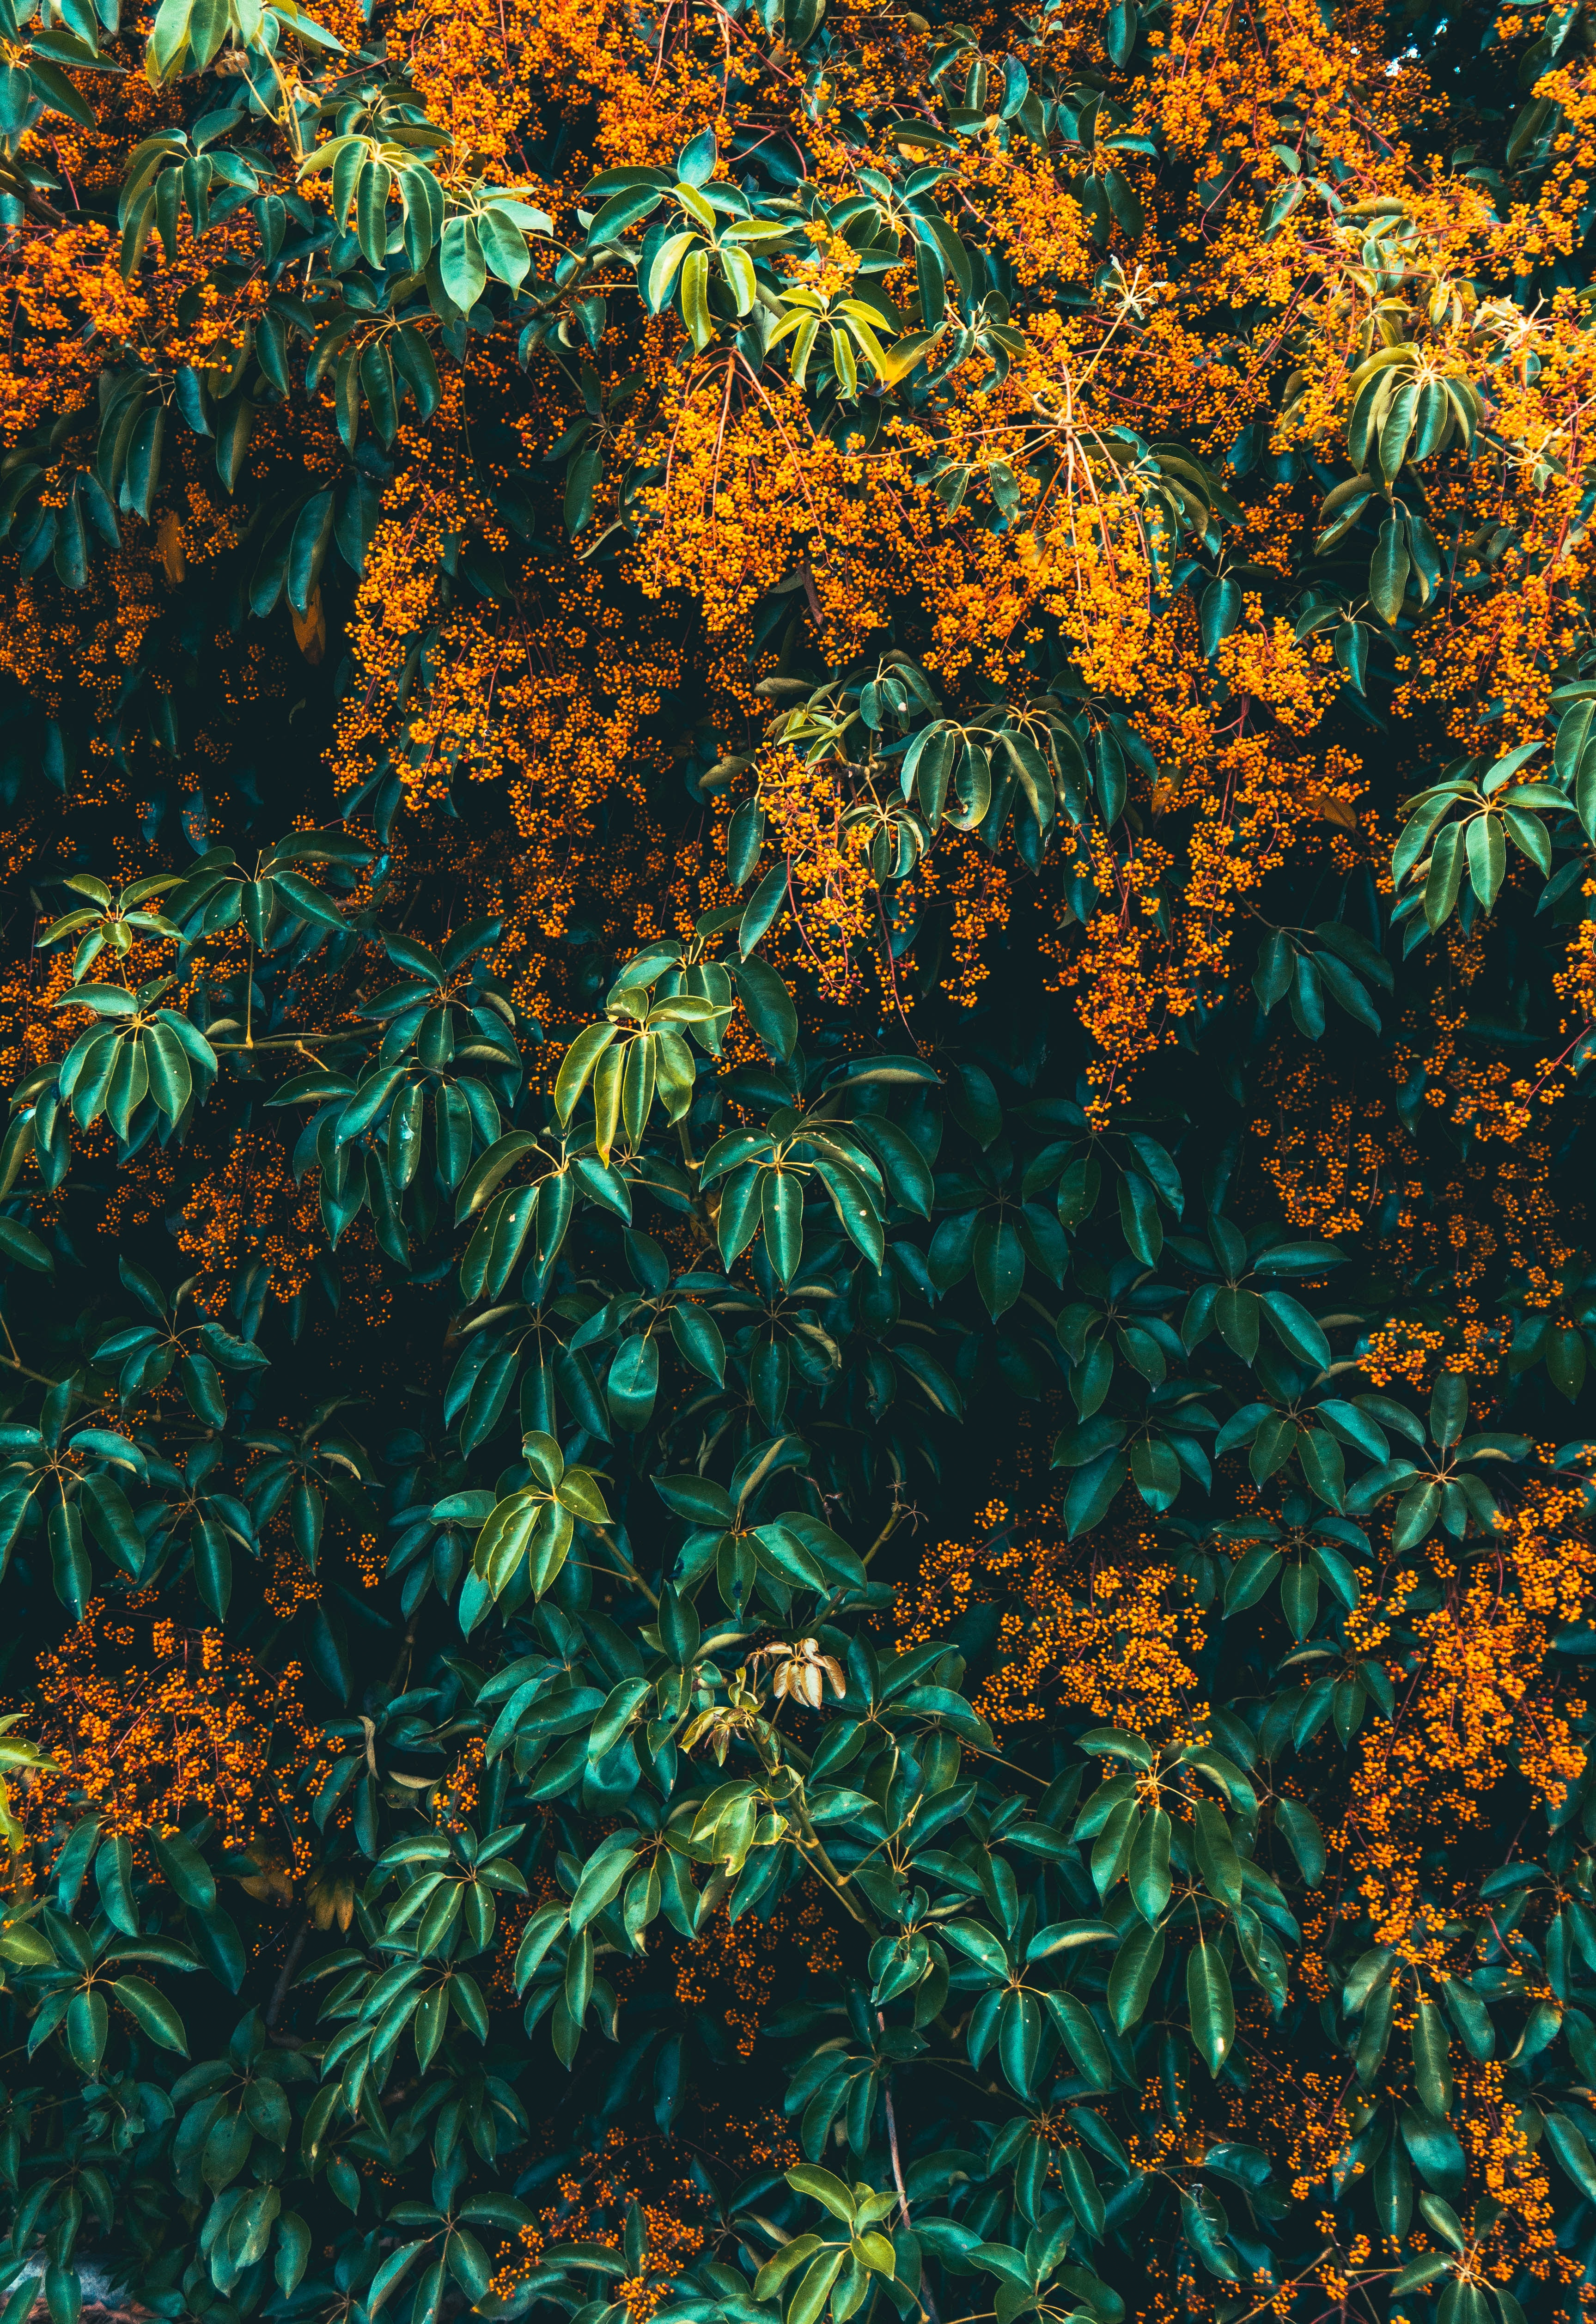 63224 download wallpaper Flowers, Bush, Plant, Wood, Tree, Bloom, Flowering screensavers and pictures for free